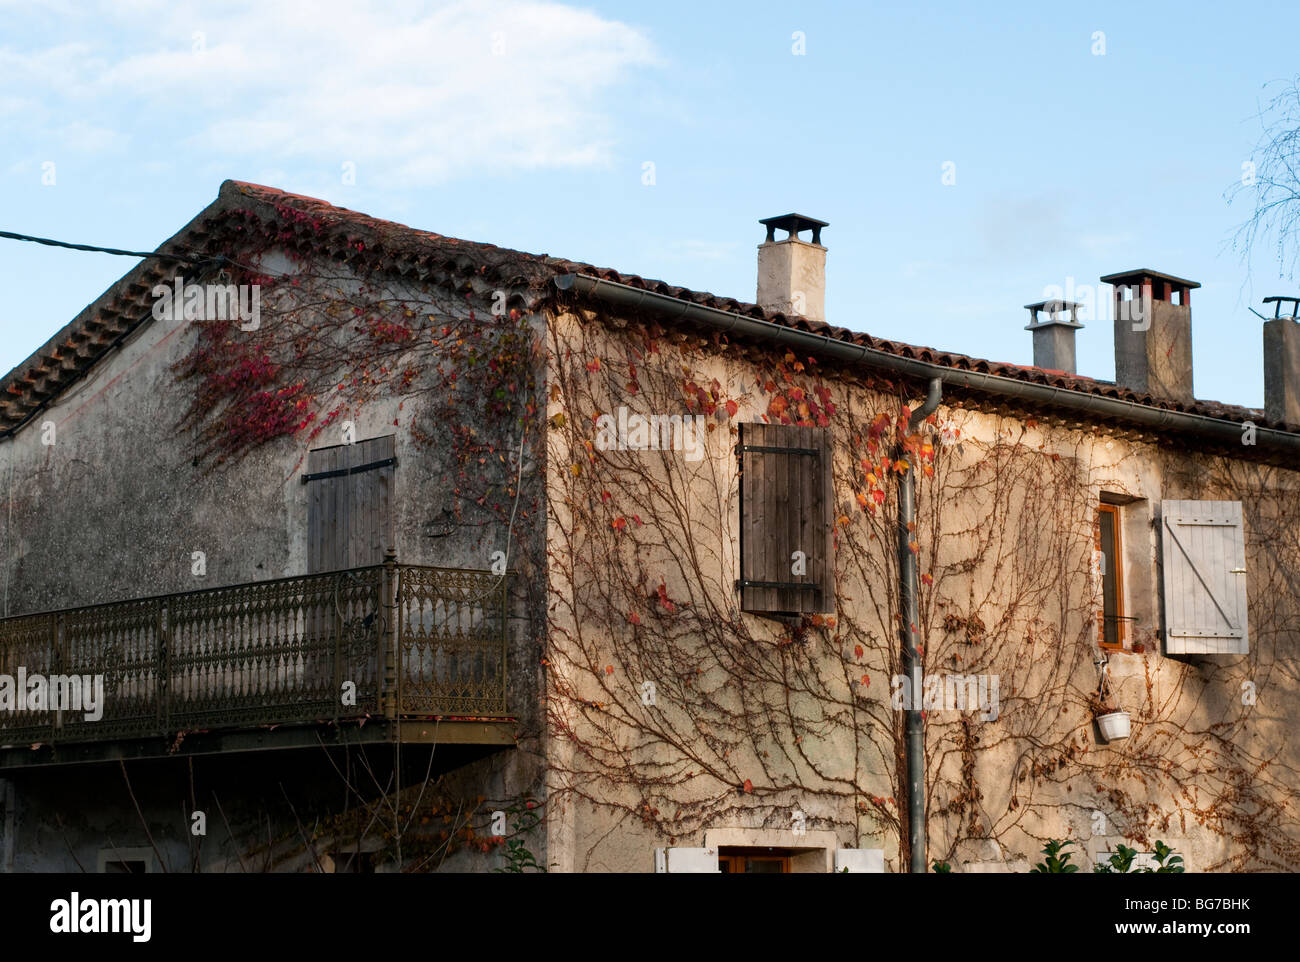 Virginia creeper on an old house the village of Brissac, Herault, South of France - Stock Image